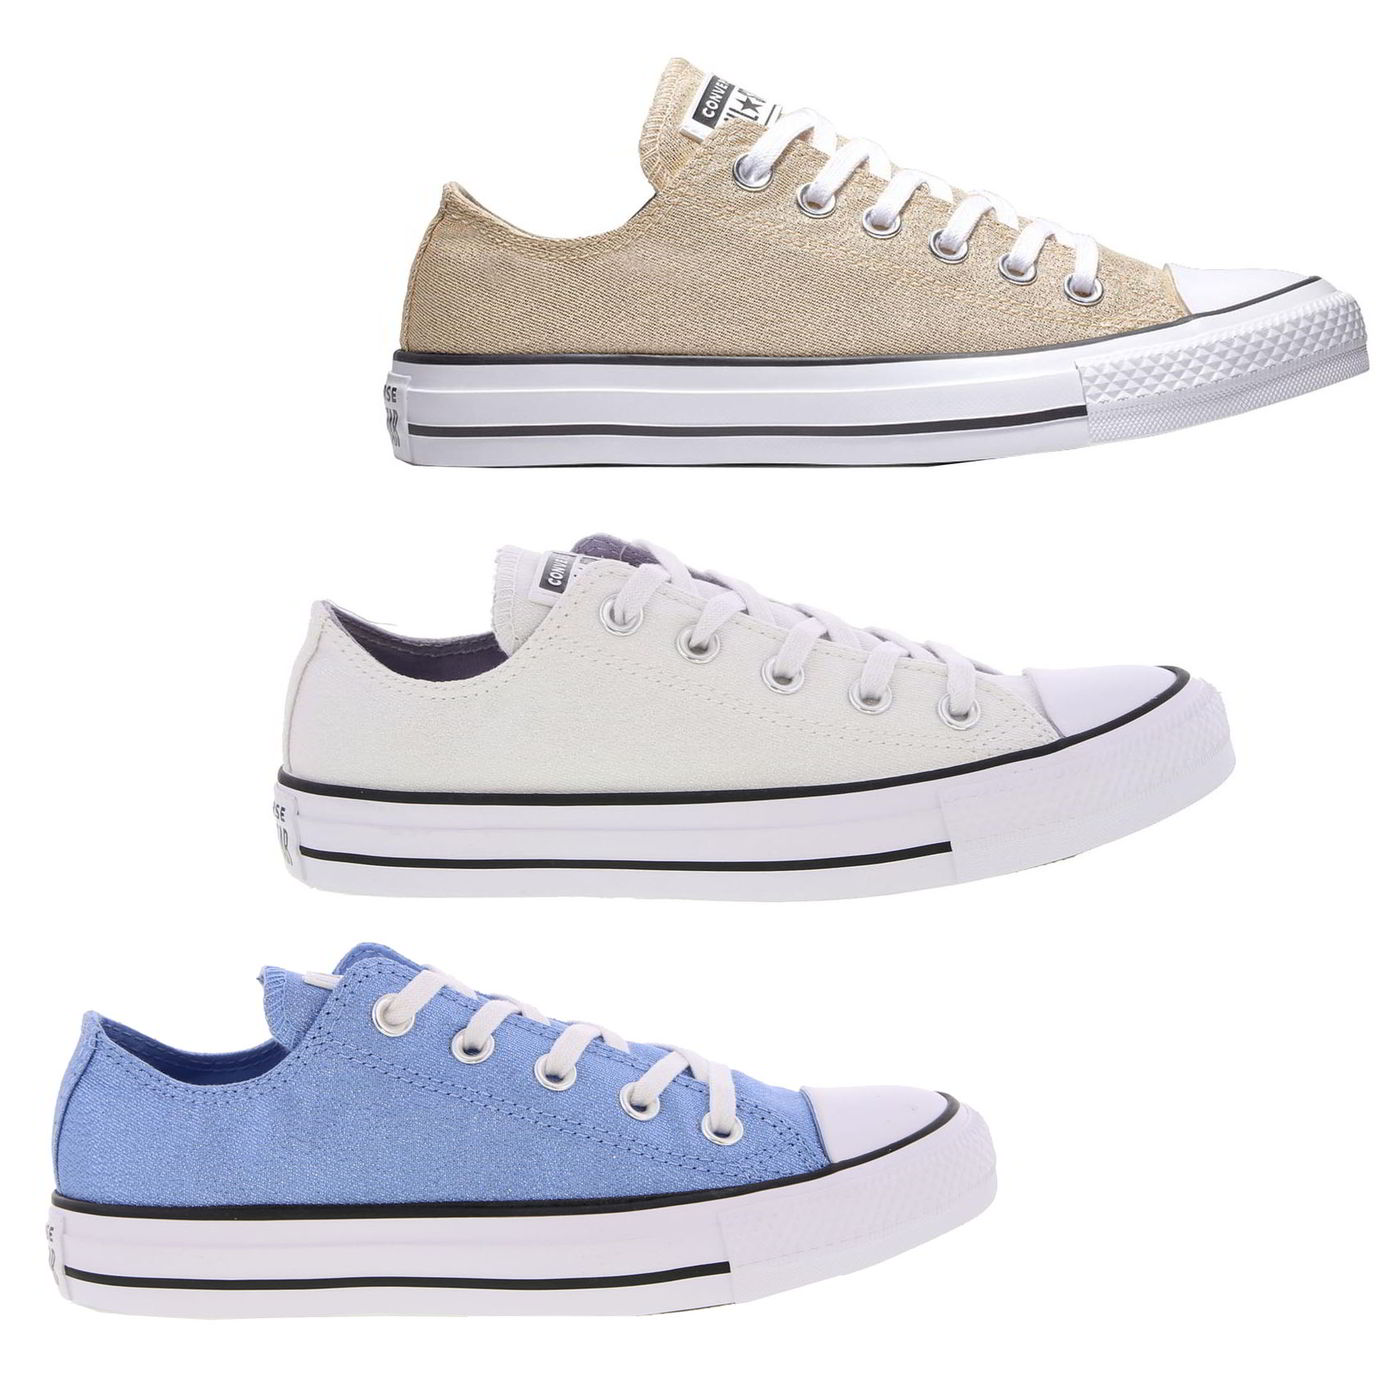 3cbb51bccd33 Details about Converse CT All Star Ox Womens Ladies Oxford Canvas Trainers  Shoes Size 4-8